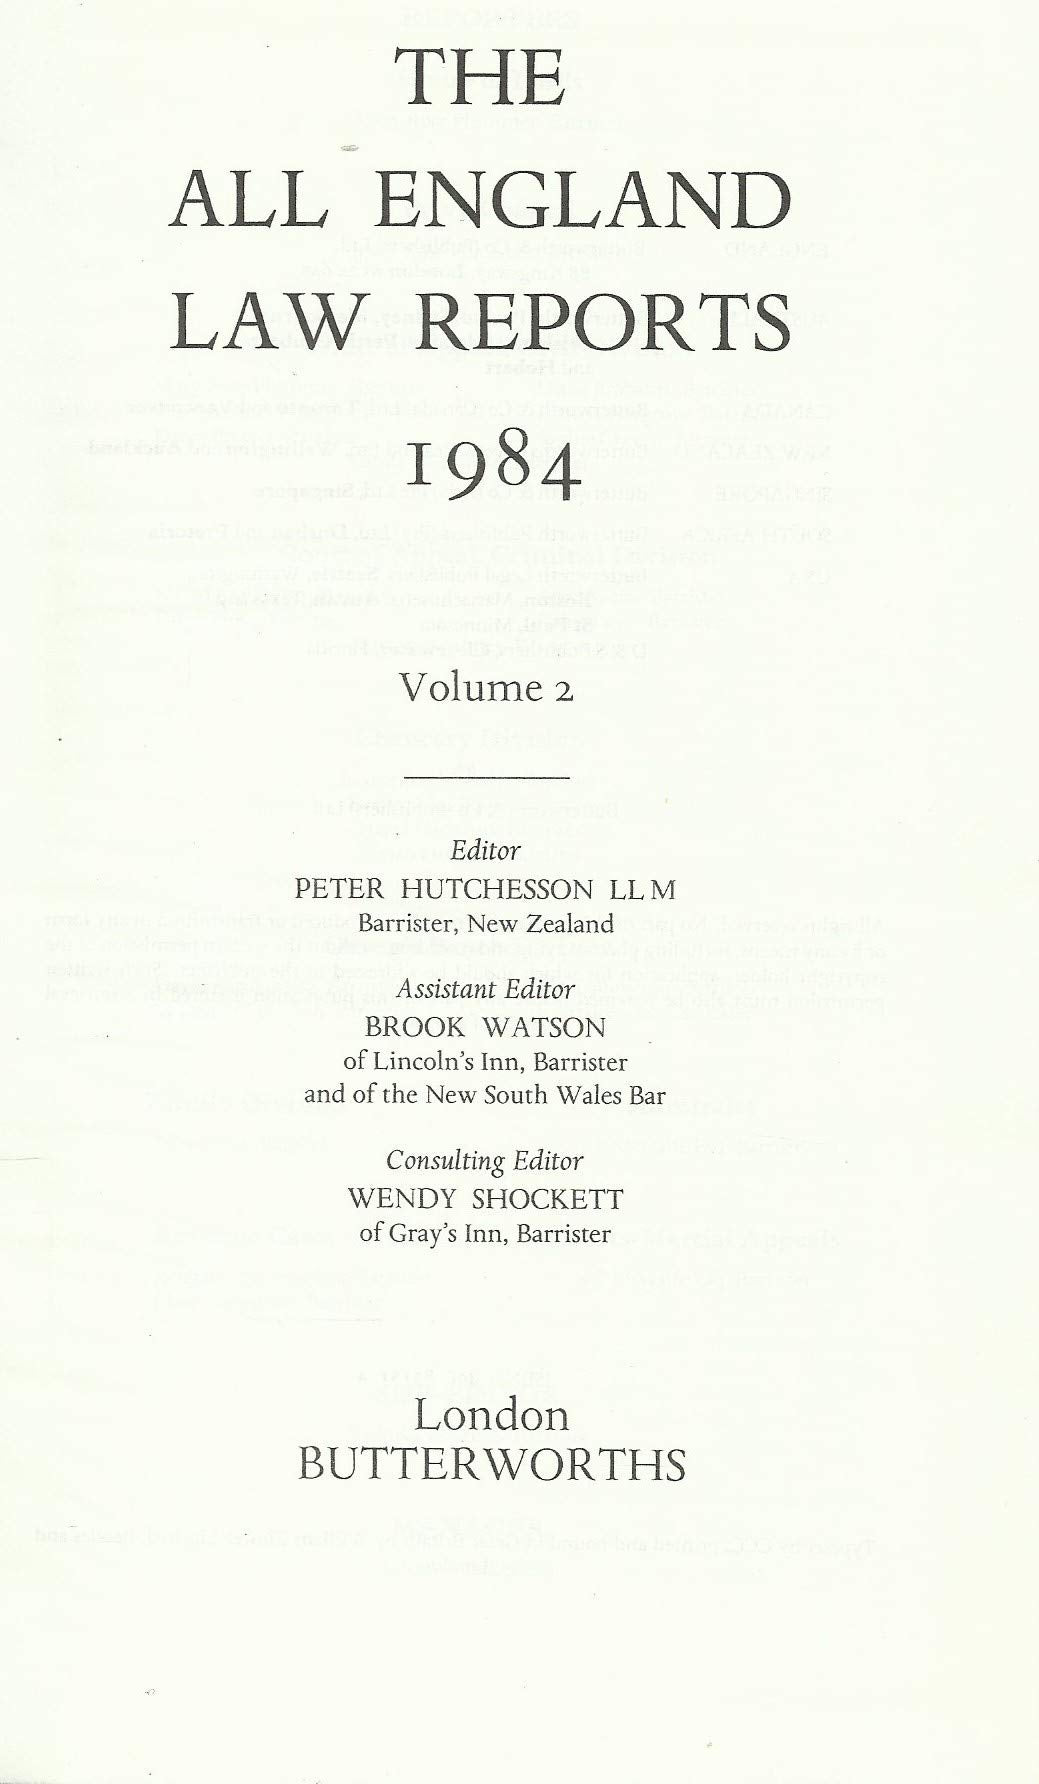 The All England Law Reports. 1984, Volume 2.